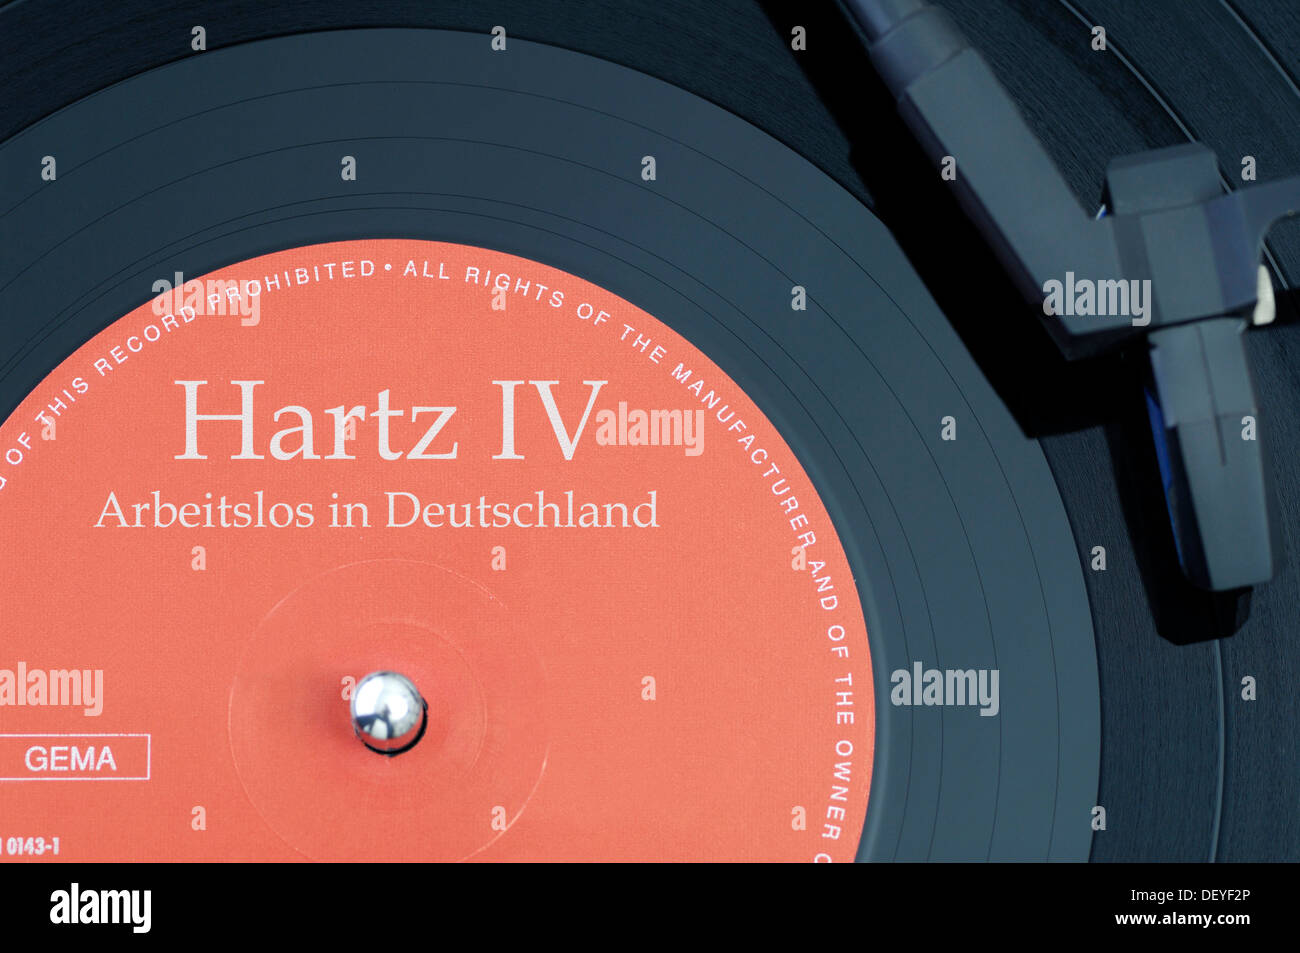 Record labeled 'Hartz IV' and 'Arbeitslos in Deutschland', unemployed in Germany - Stock Image